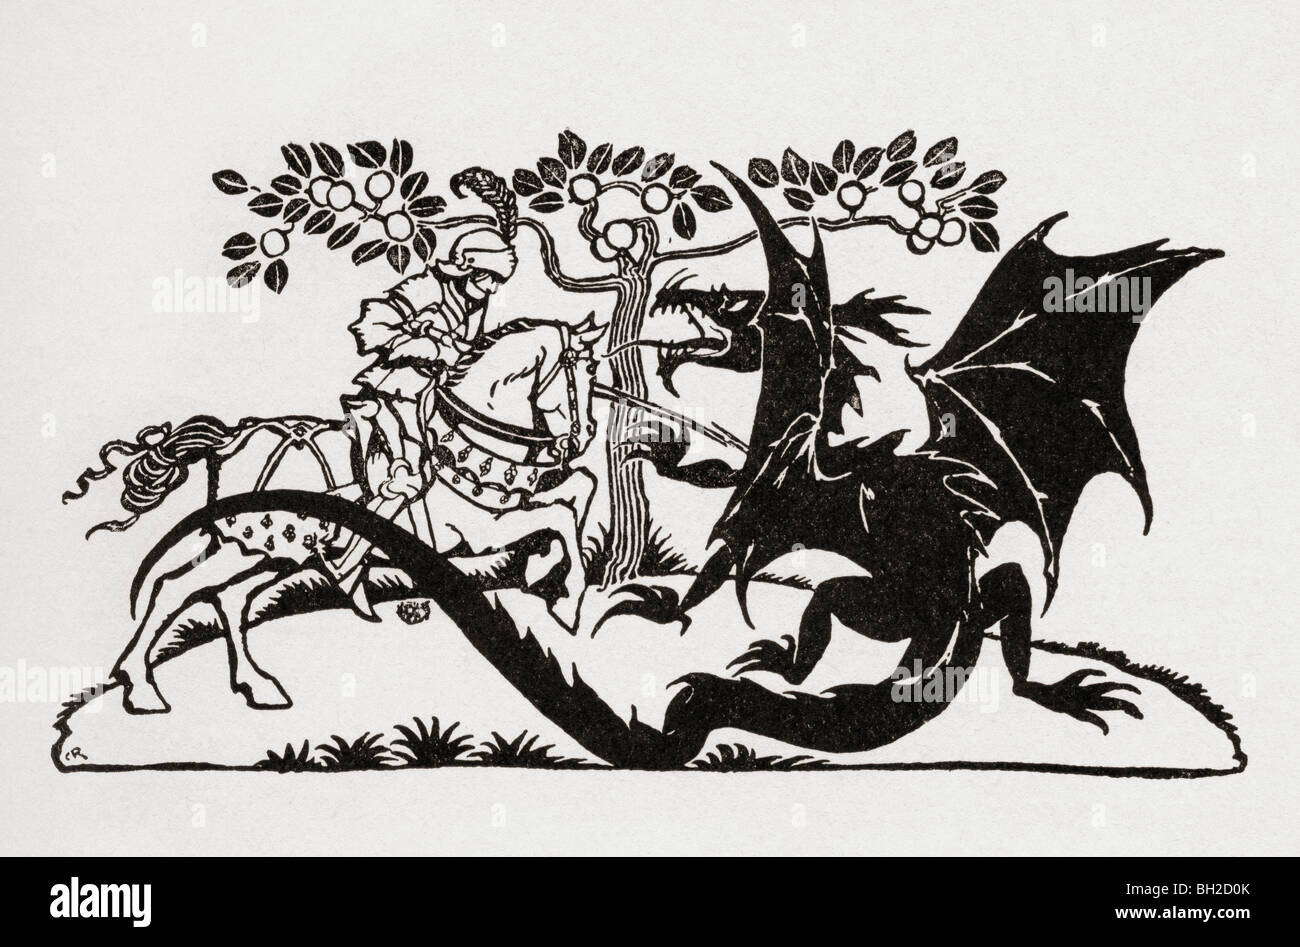 George and the Dragon. From the book English Fairy Tales retold by F.A. Steel - Stock Image